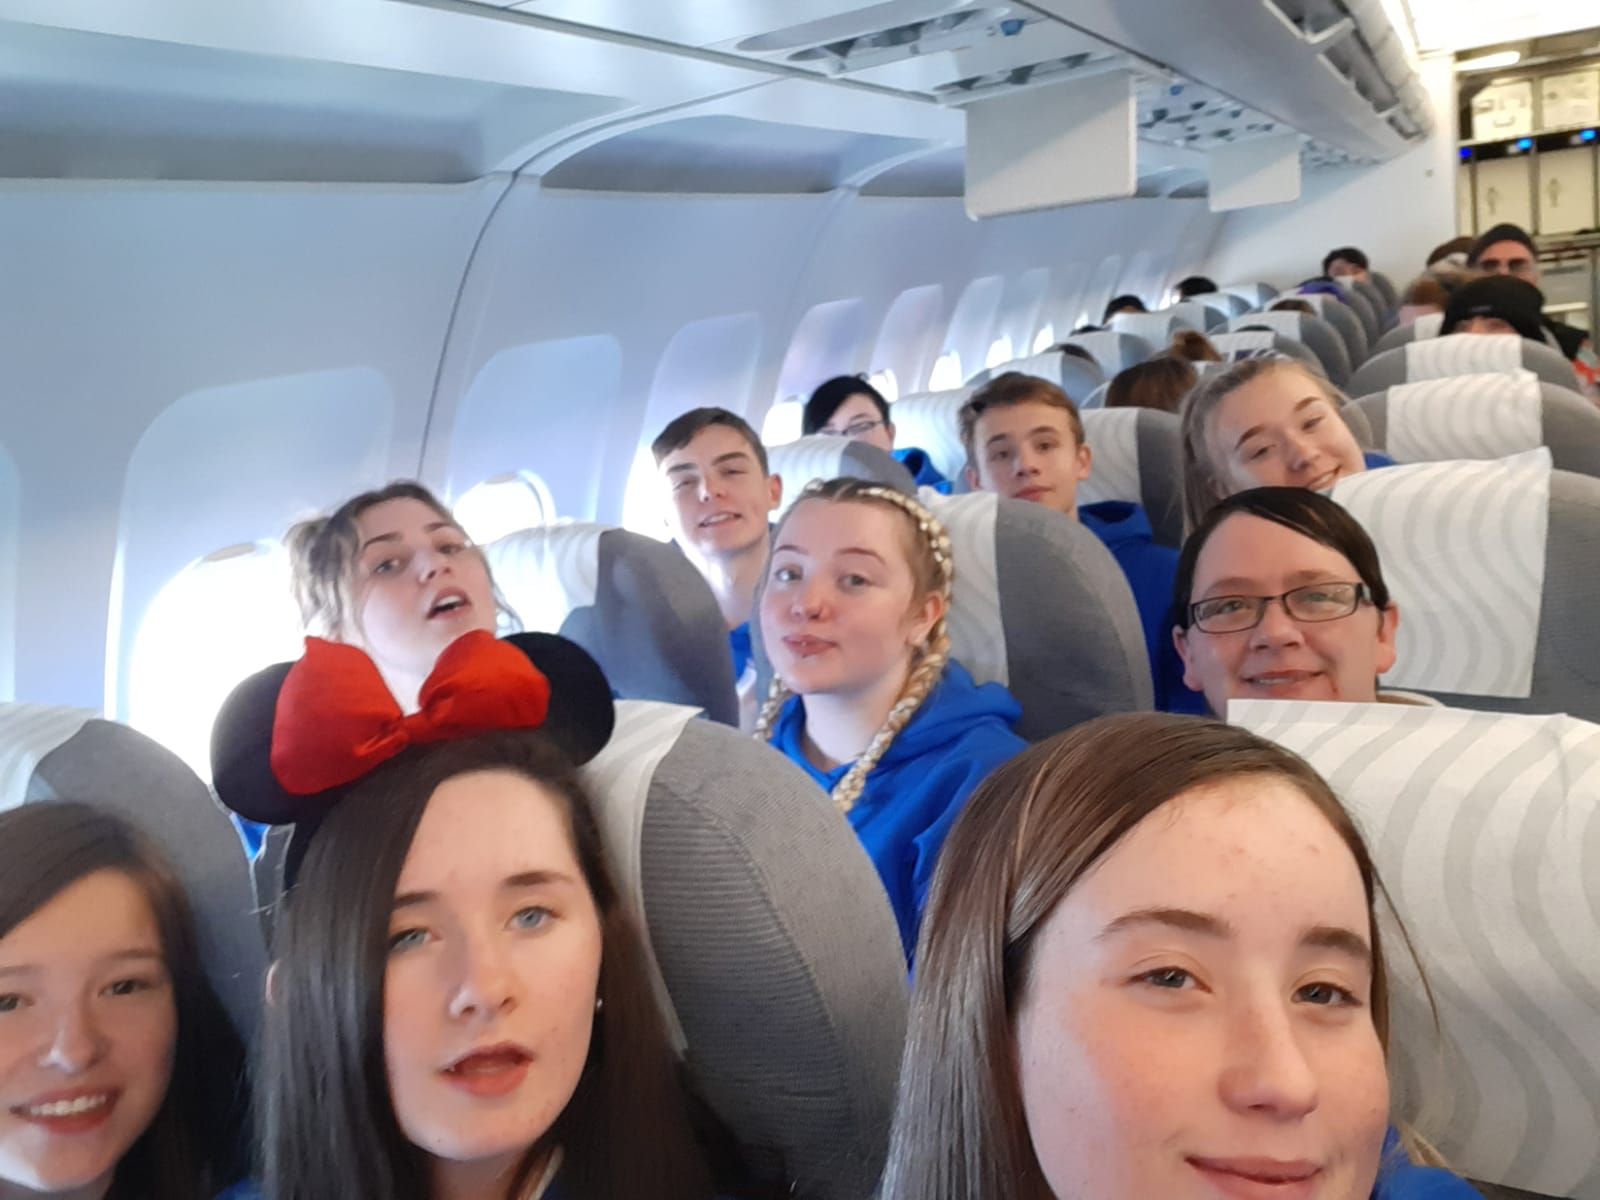 And there off! CDYS Finland 2019